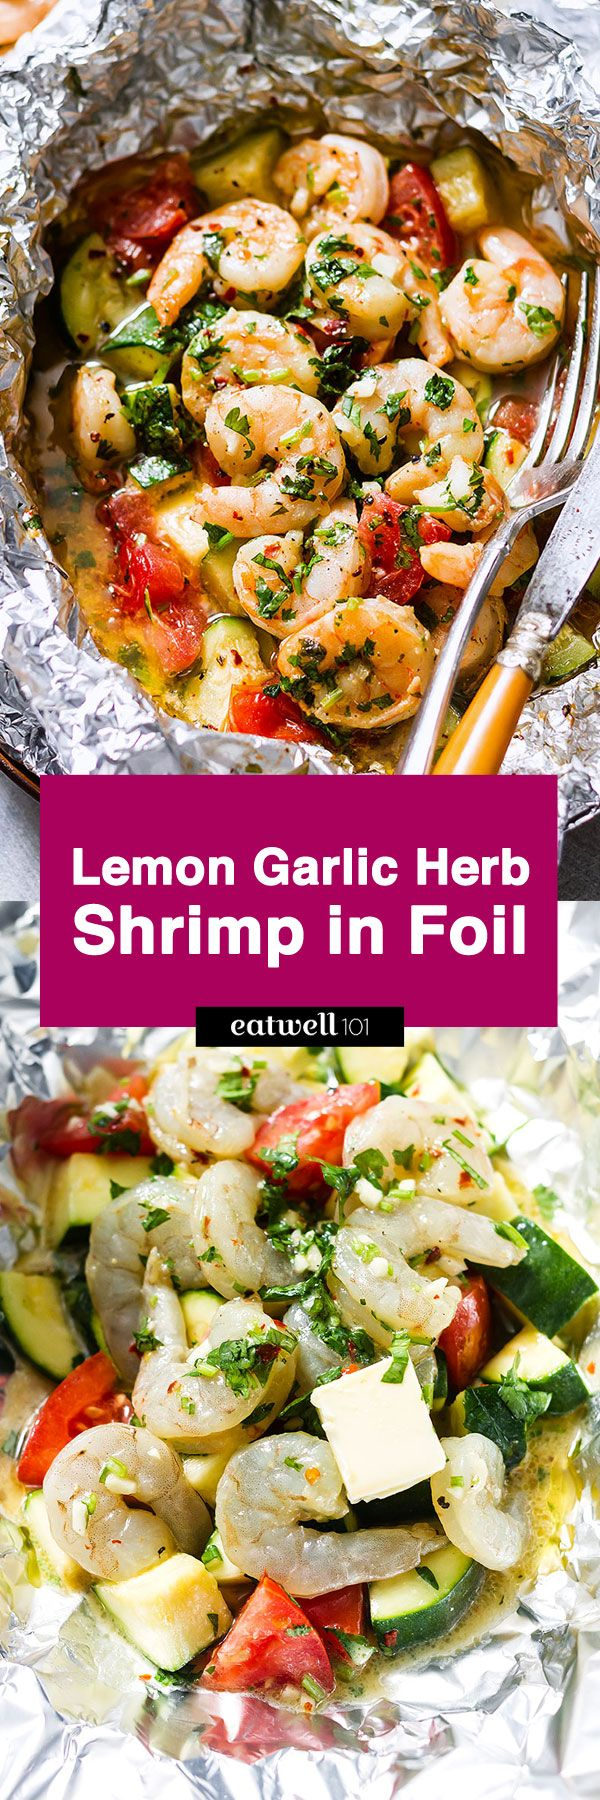 Lemon Garlic Herb Shrimp in Foil Packets: Want to try something new? Enjoy the hearty flavors of a nourishing dinner with these lemon garlic herb shrimp in foil packets. Shrimp with tomato and zucchini are marinated with a herbed lemon gar…